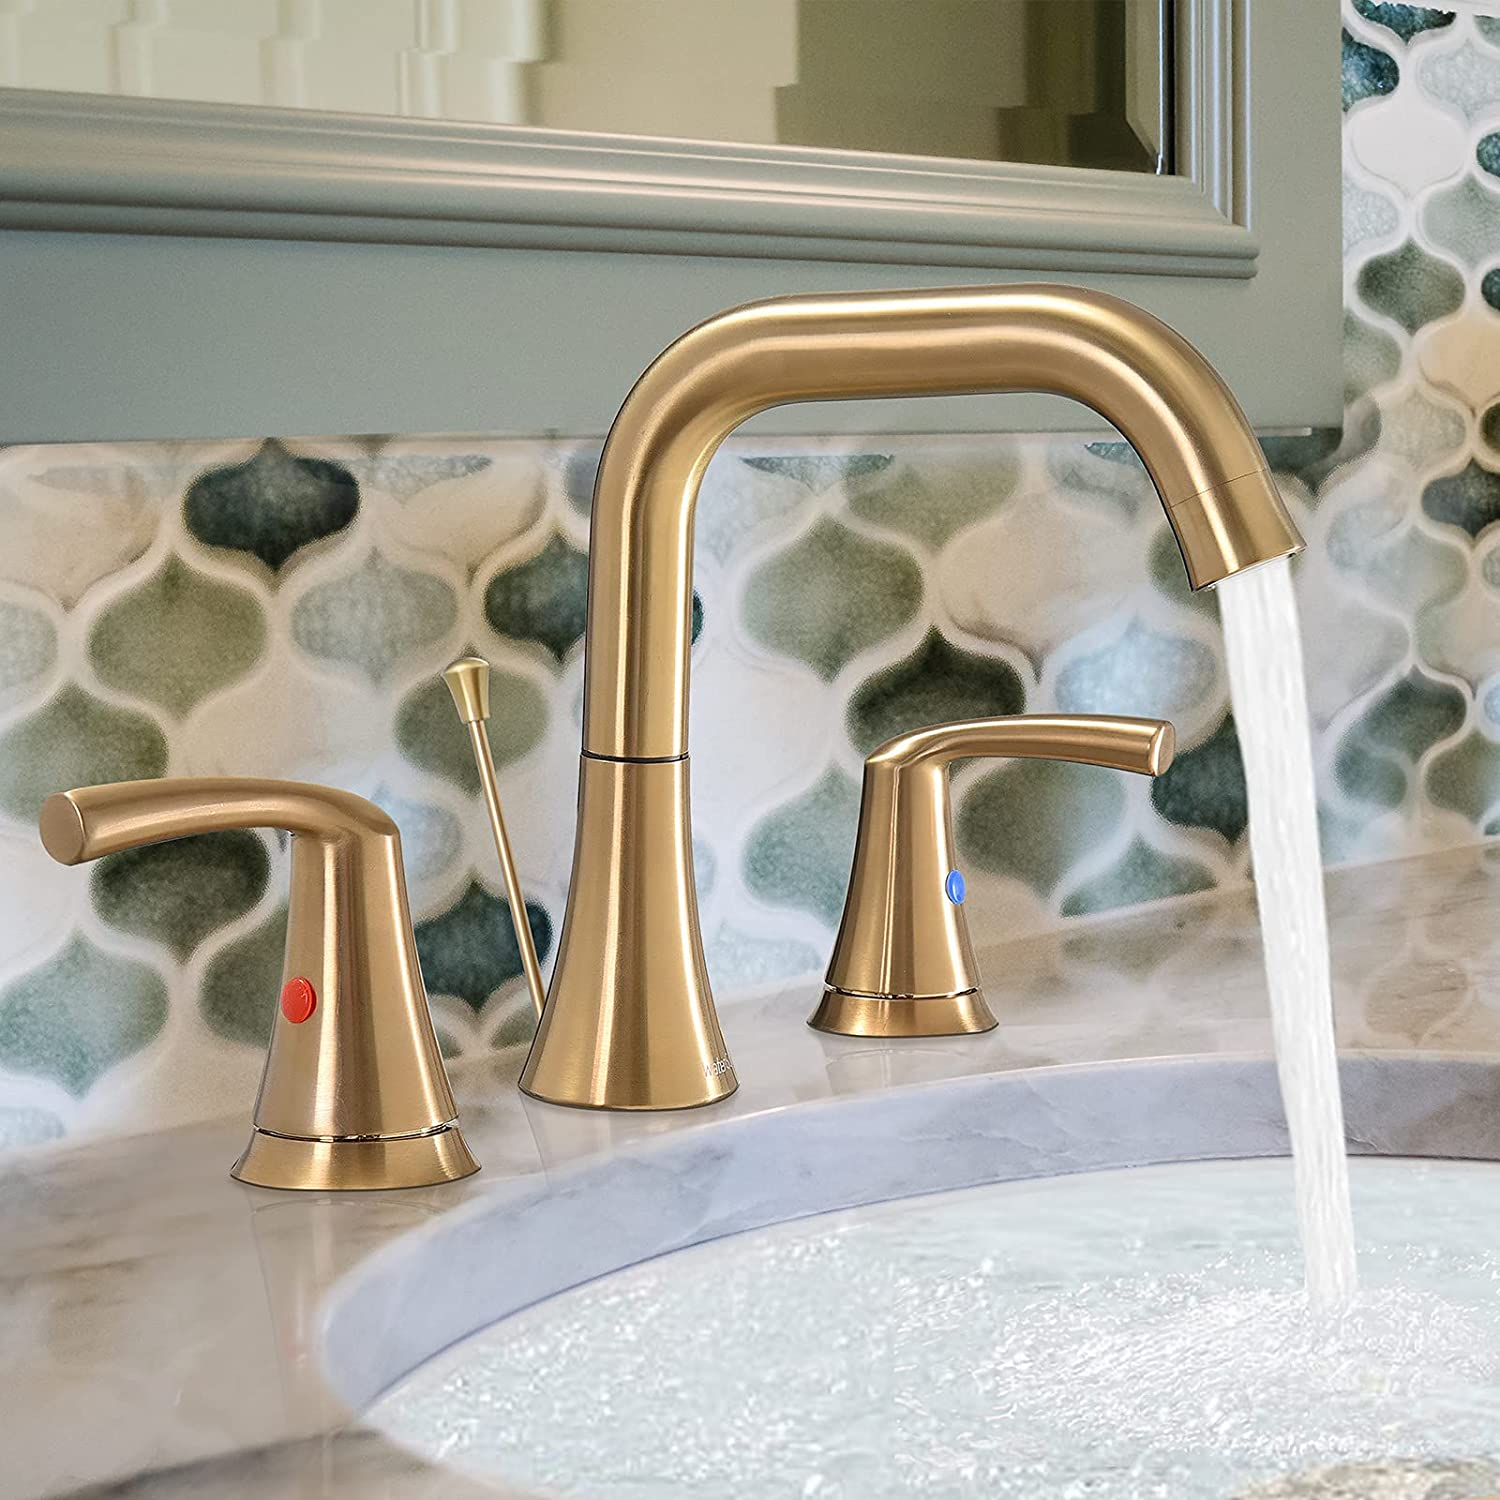 """WaterSong 8"""" 3 Hole Widespread Brushed Gold Bathroom Sink Faucet $45.49 Coupon"""